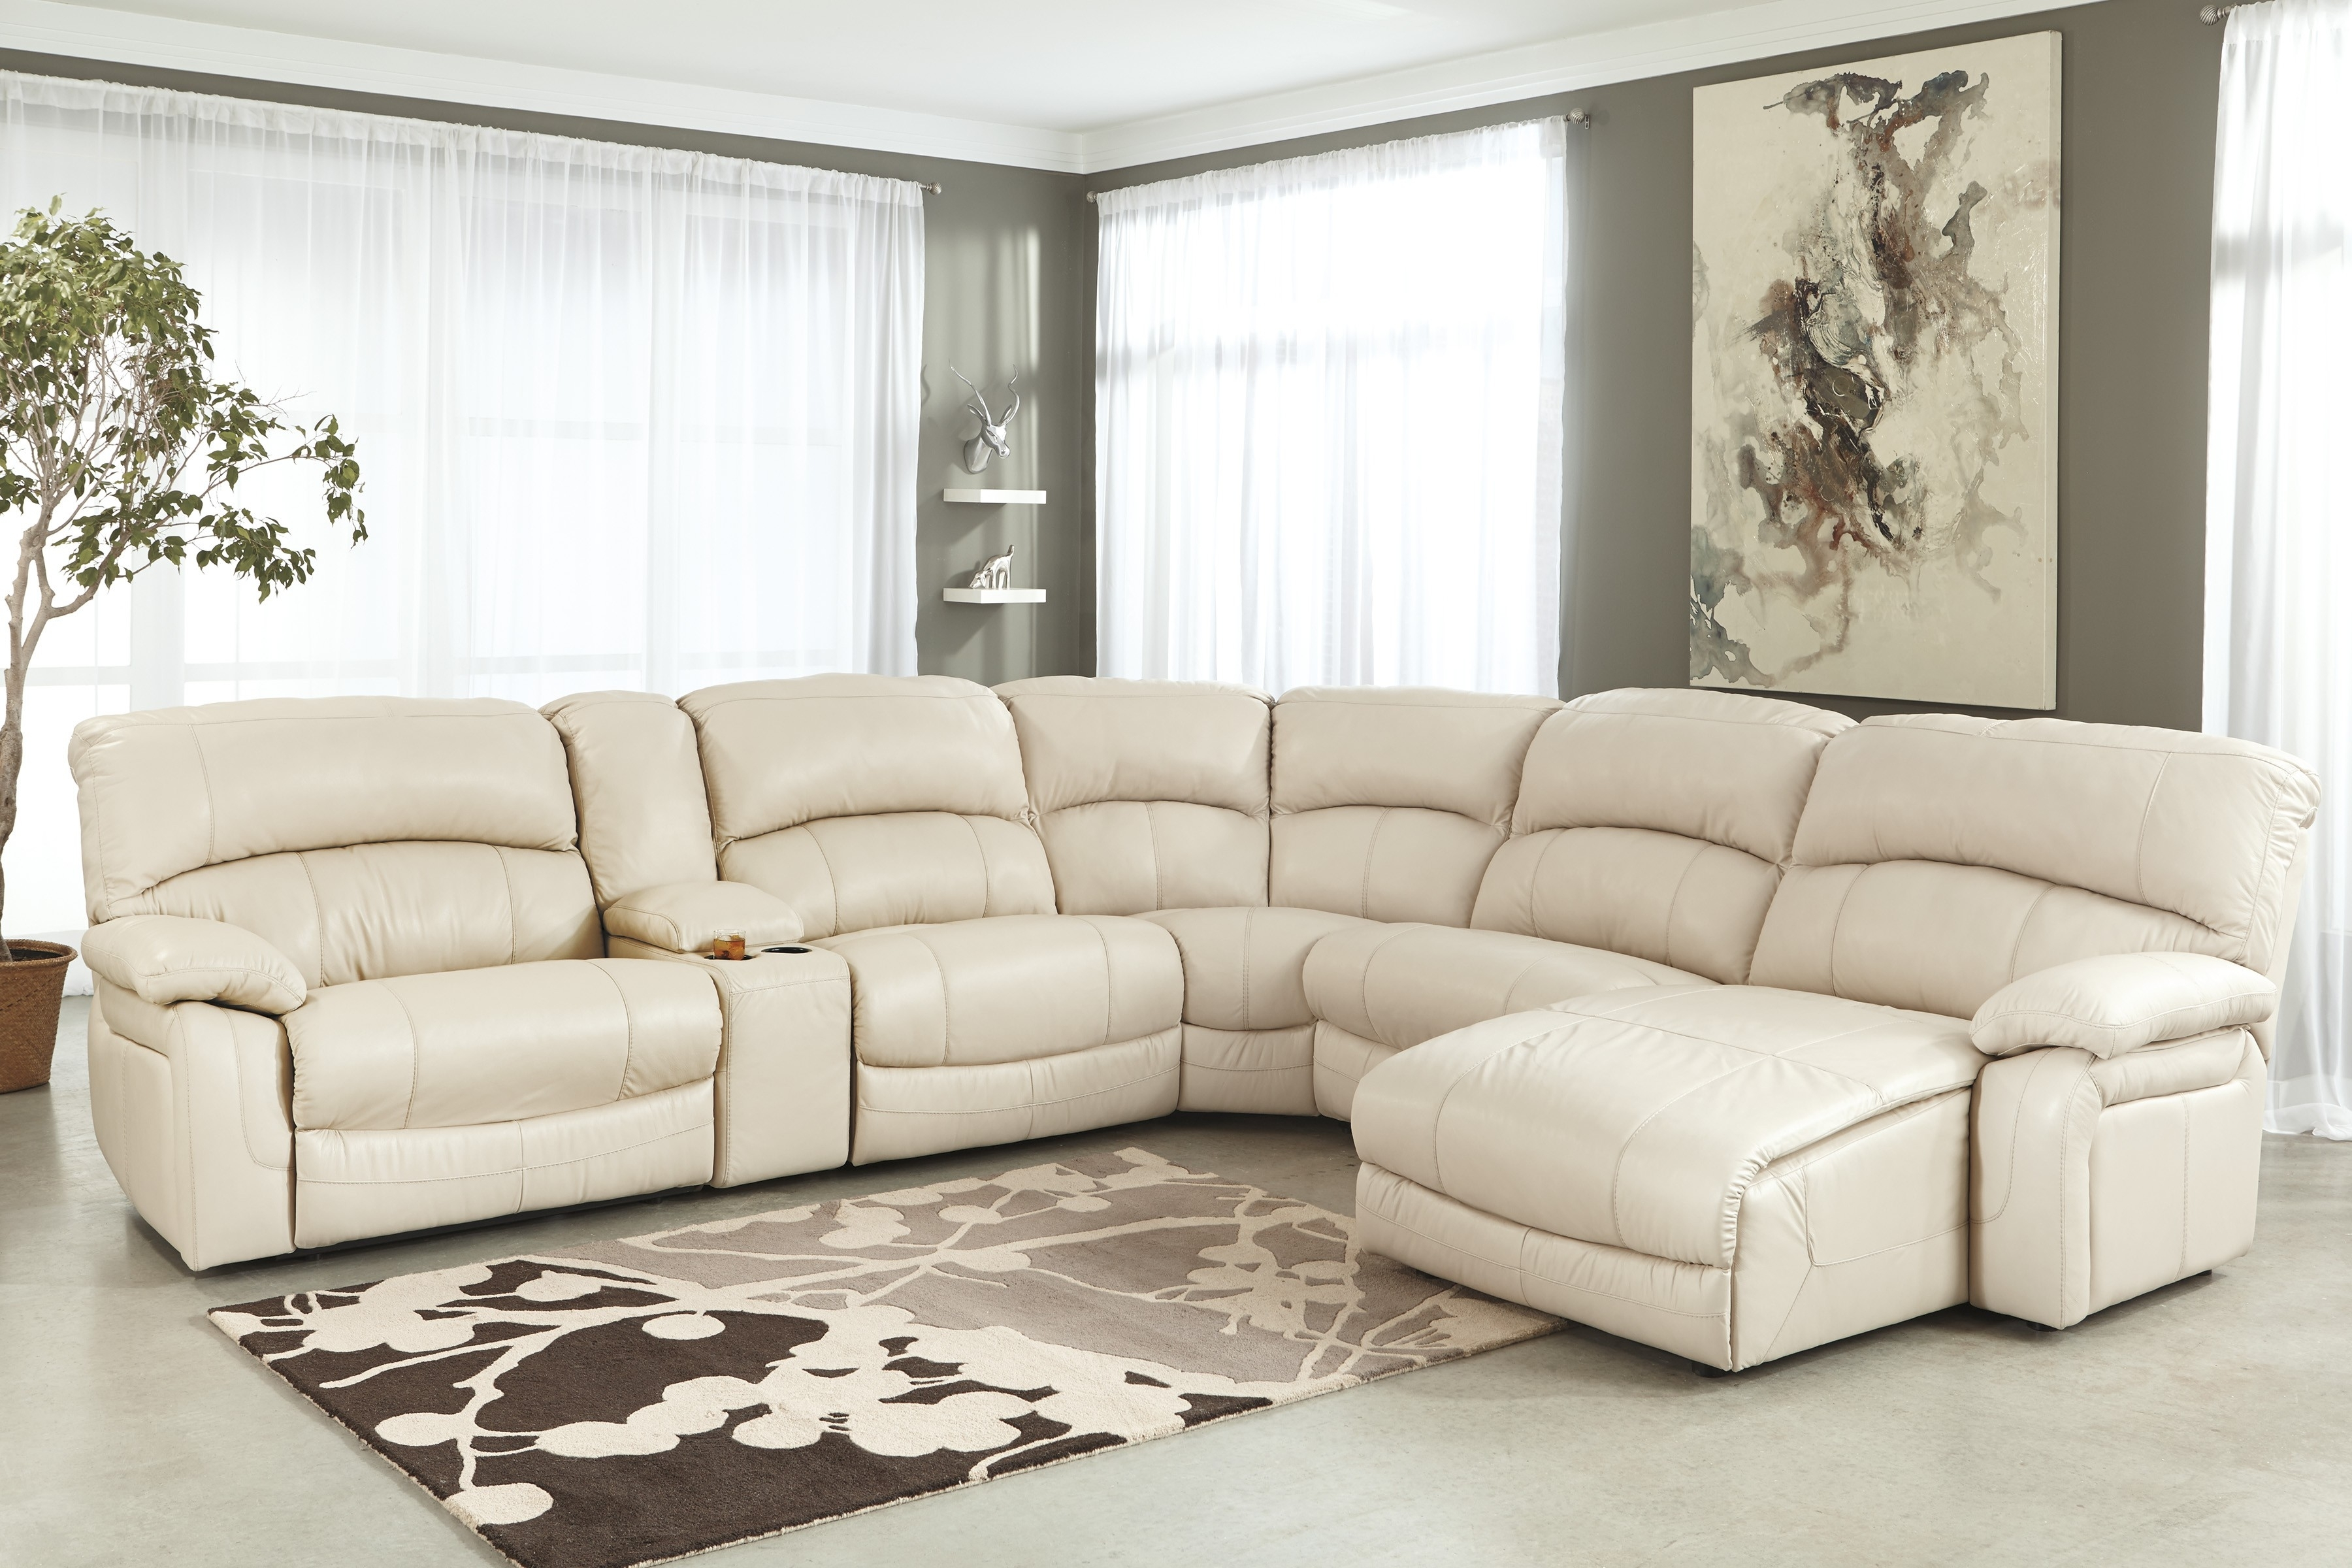 U Shaped Leather Sectional Sofa – 28 Images – Leather Sectional Sofa Intended For U Shaped Leather Sectional Sofas (Photo 2 of 10)